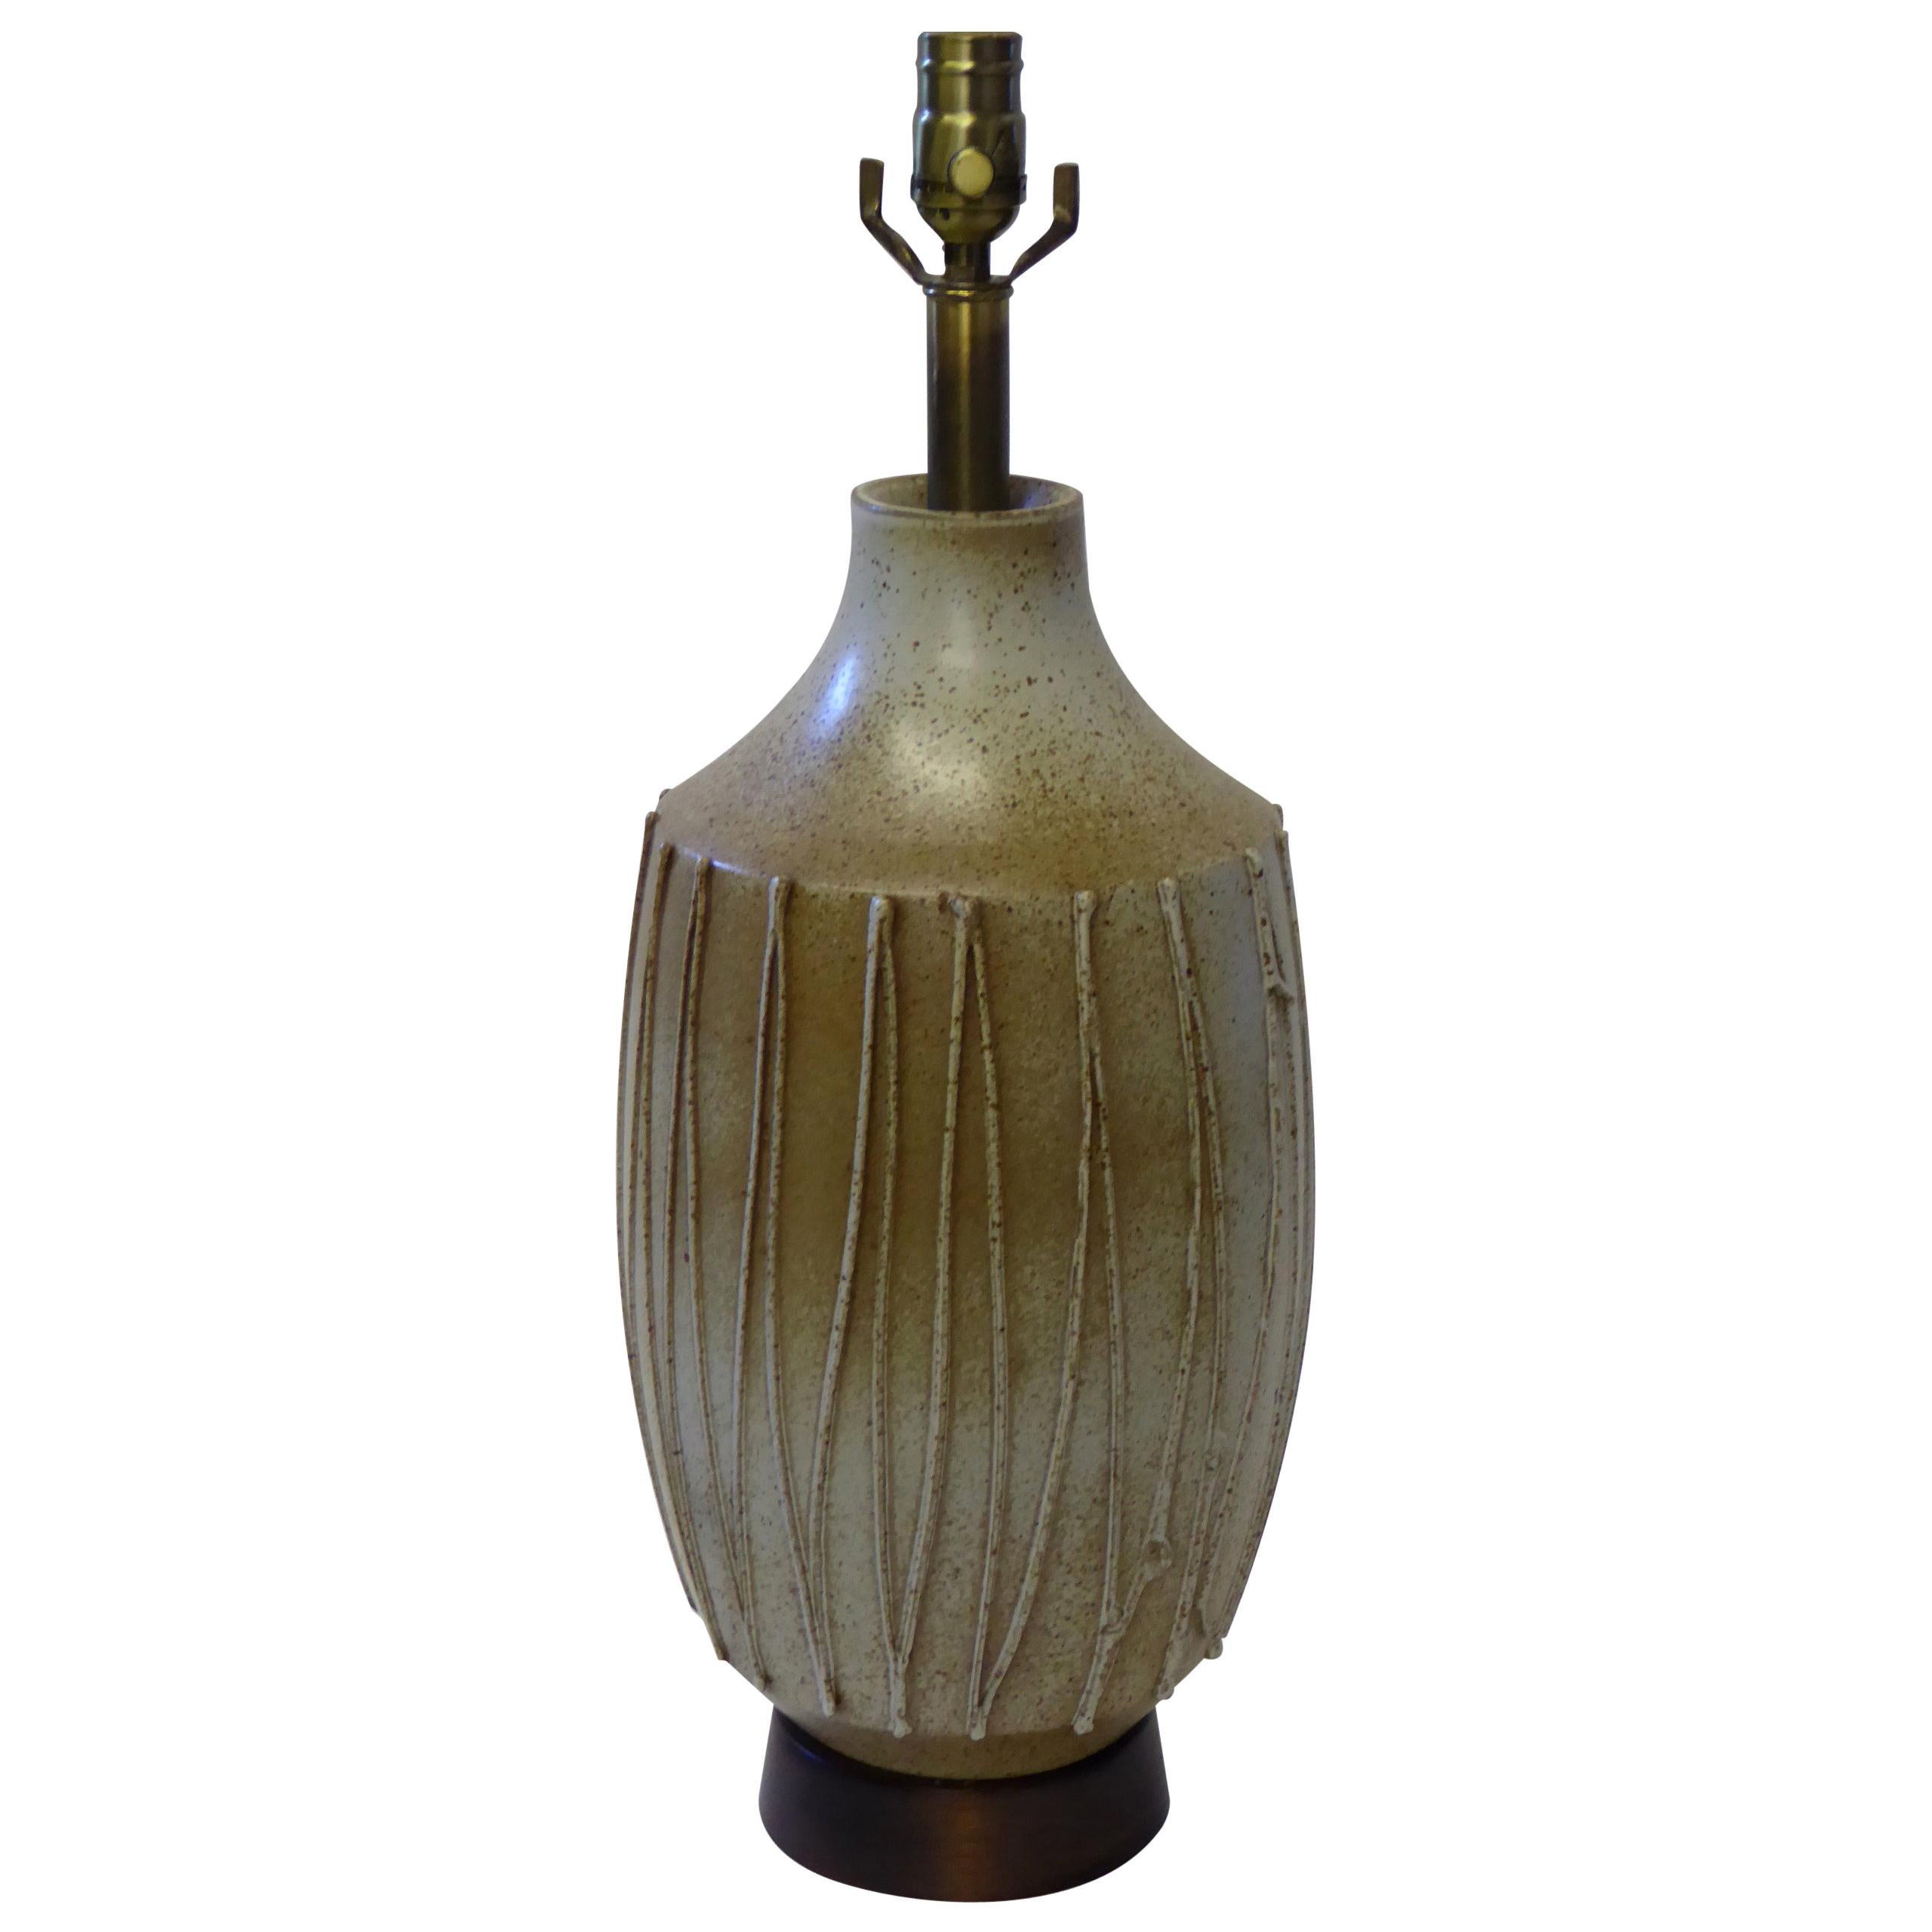 Architectural Pottery Table Lamp by David Cressey California Ceramist, 1960s